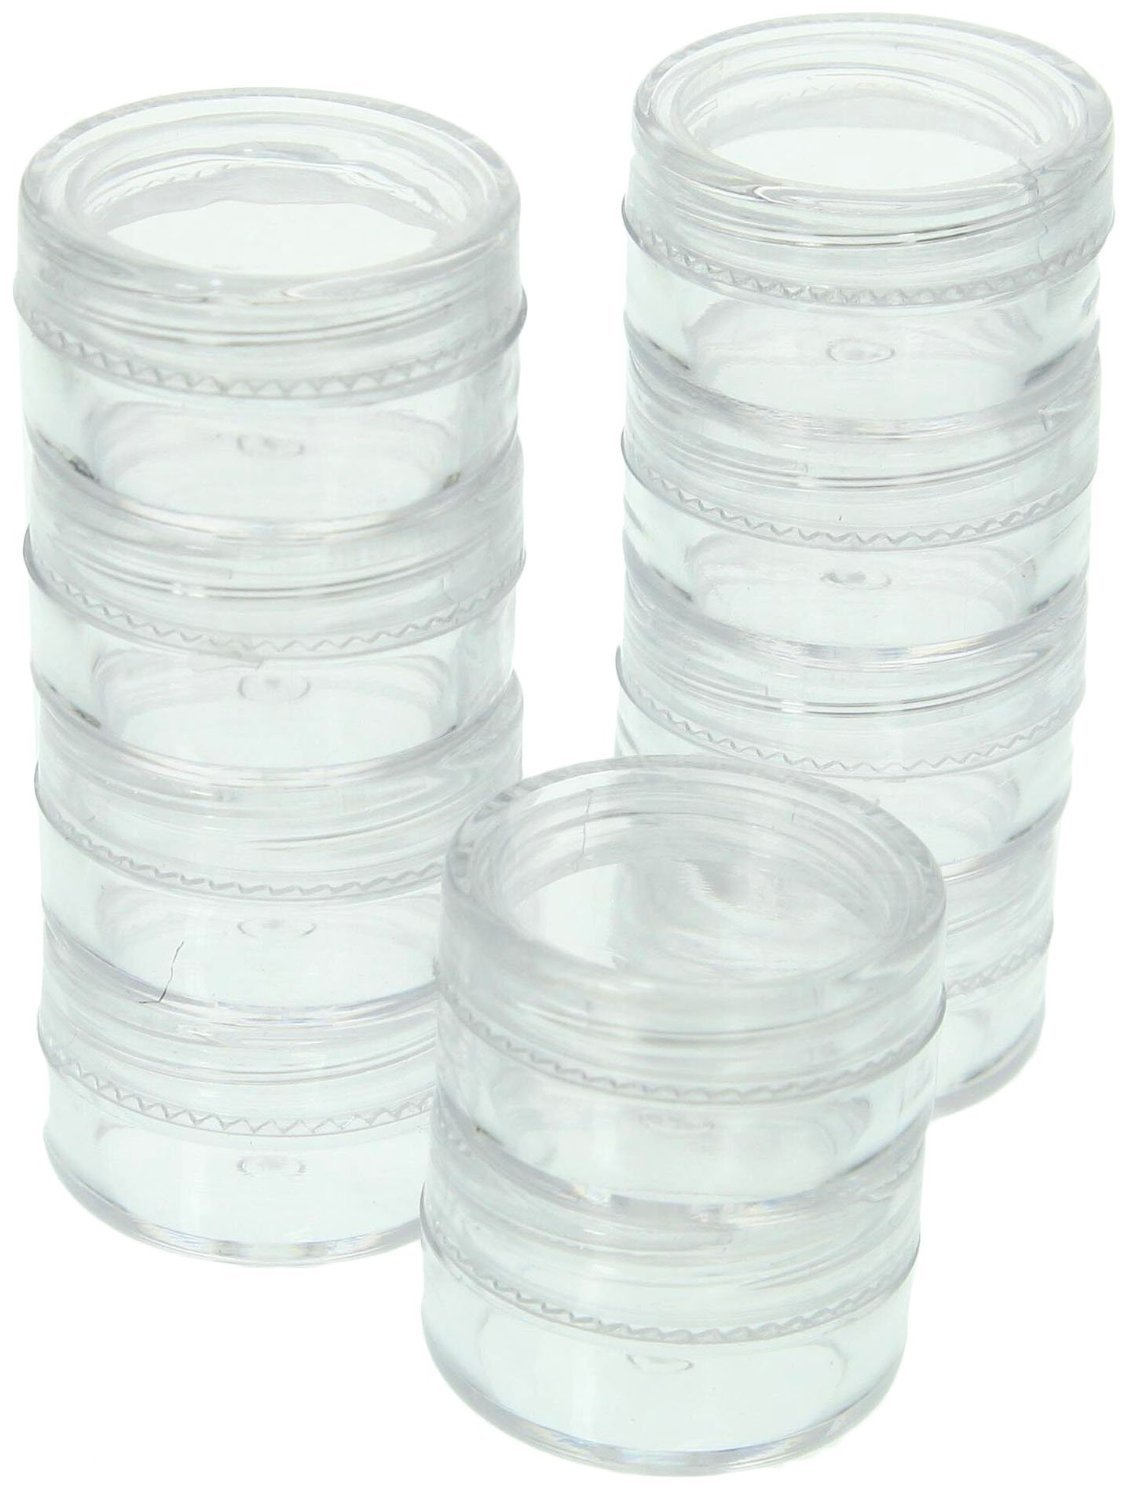 Small Storage Containers Amazonca